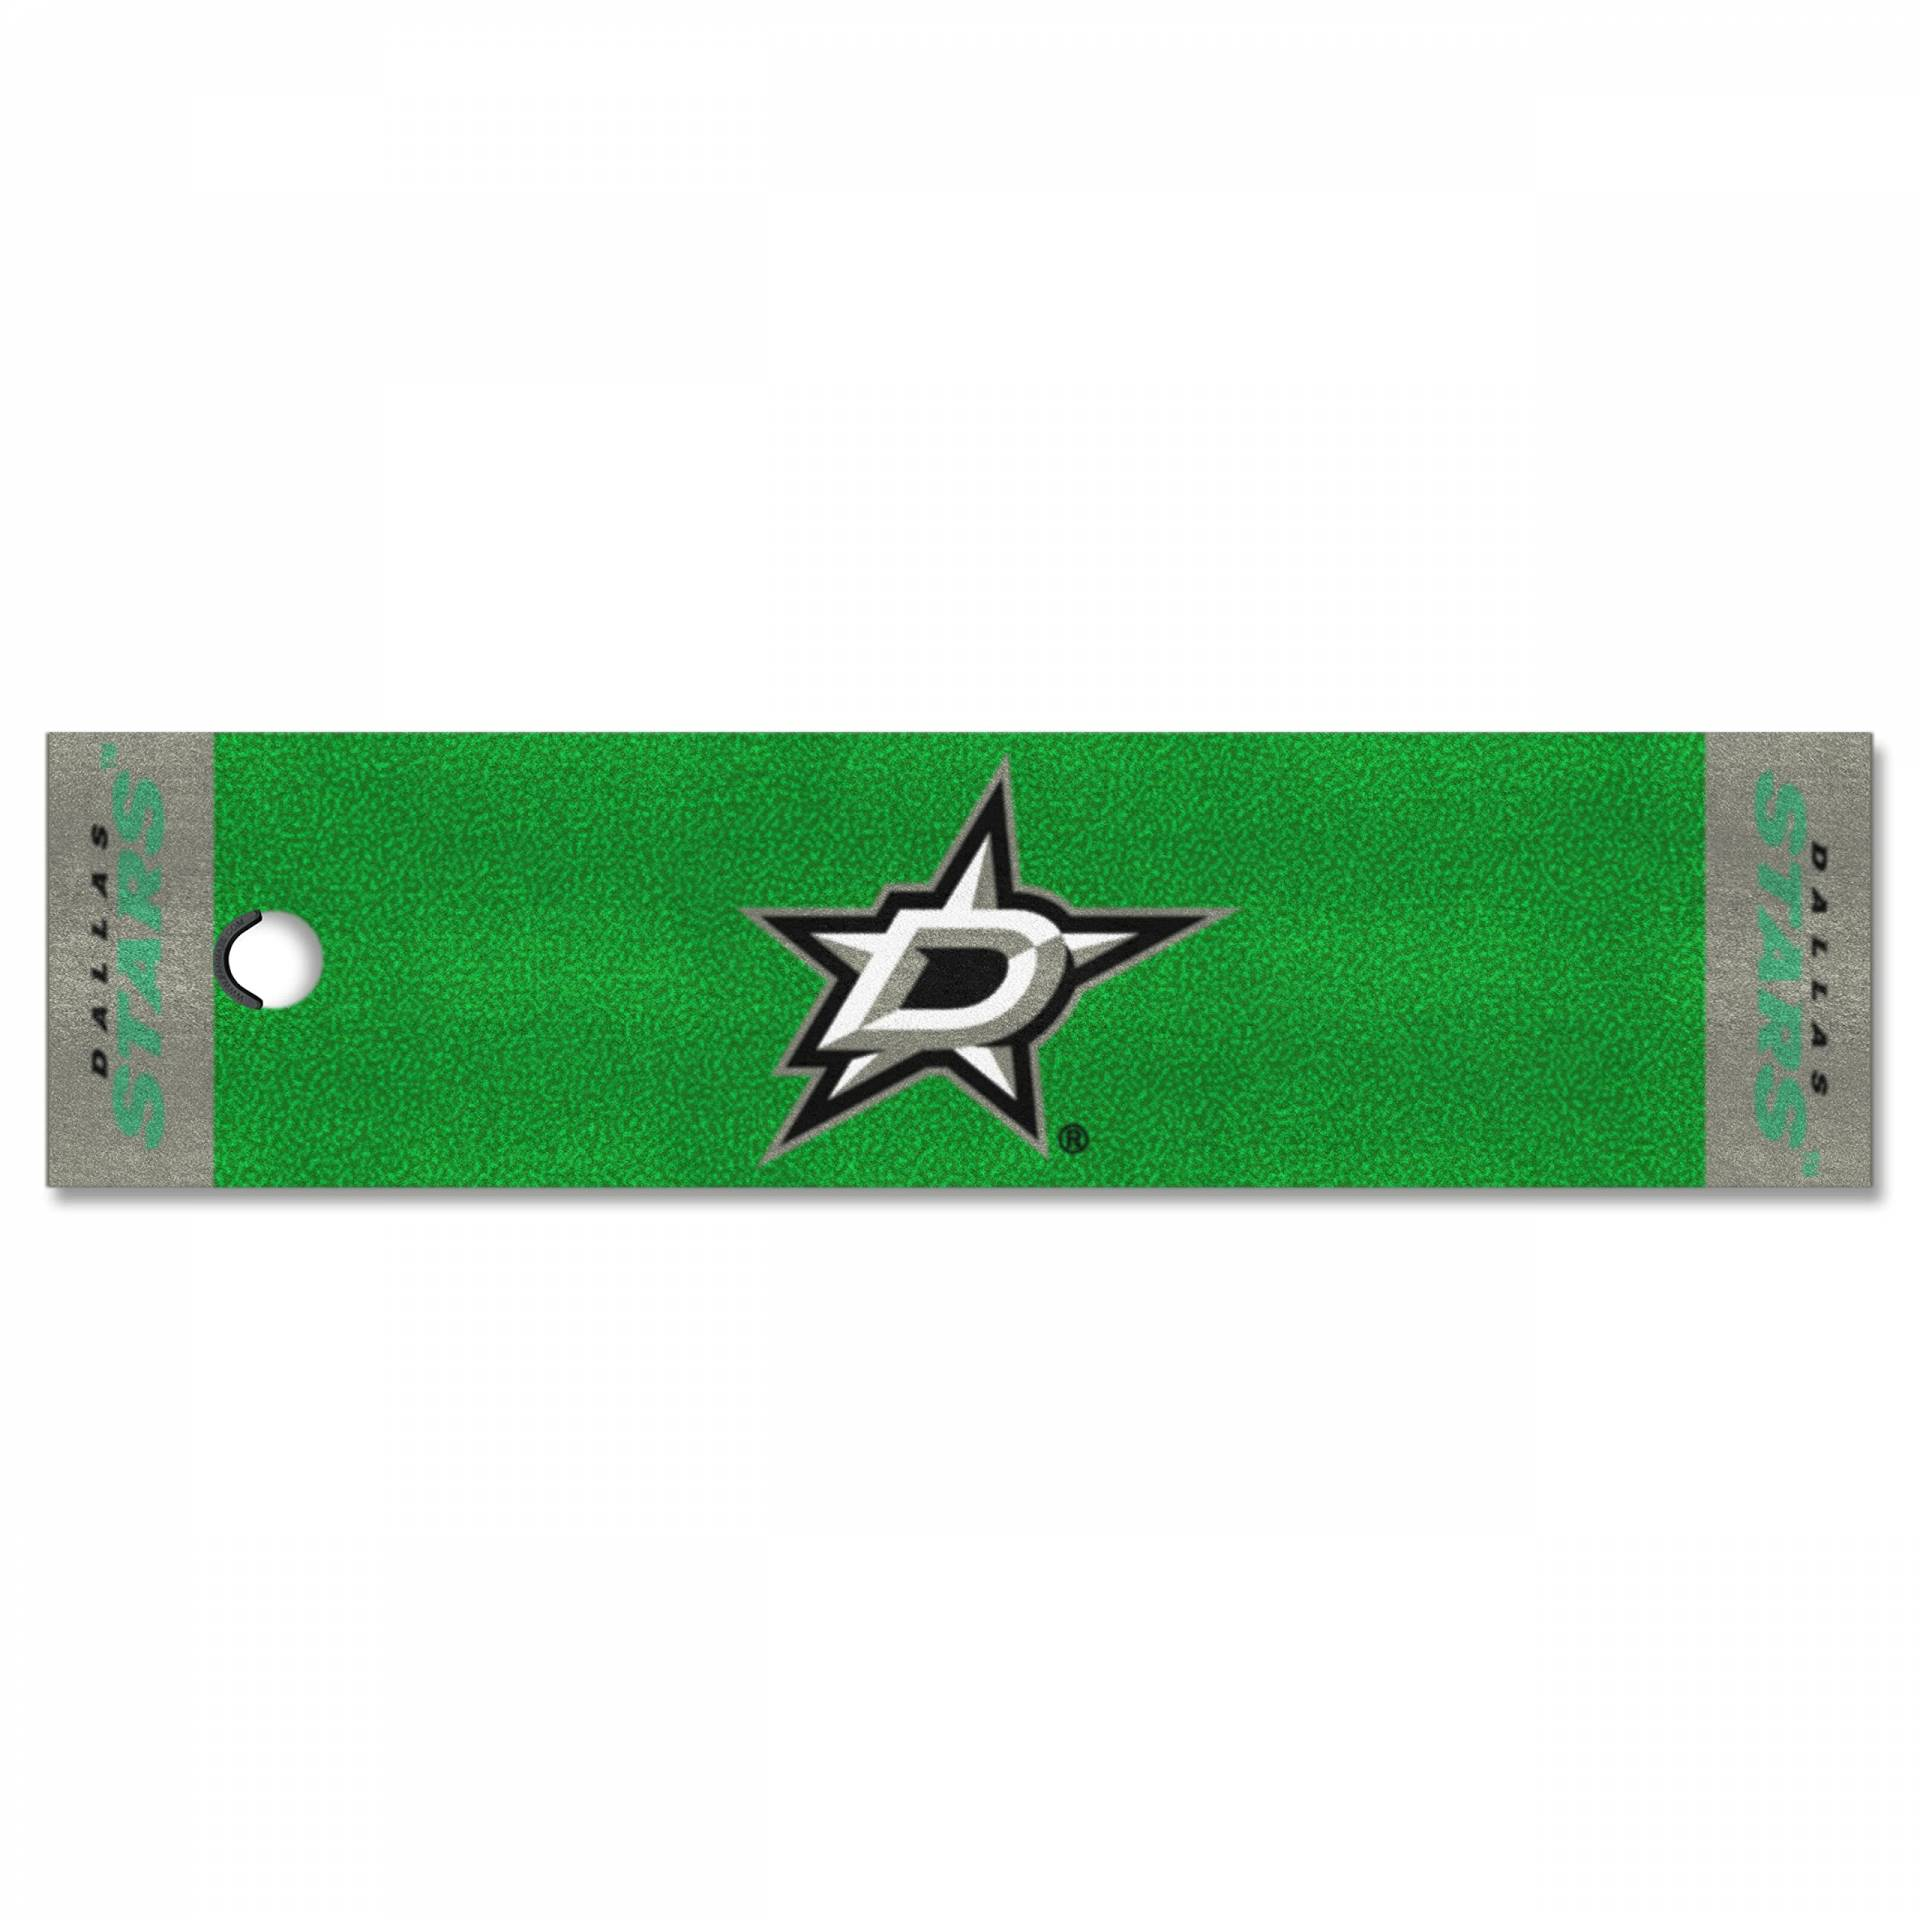 FANMATS NHL Dallas Stars Nylon Face Putting Green Matte von FANMATS